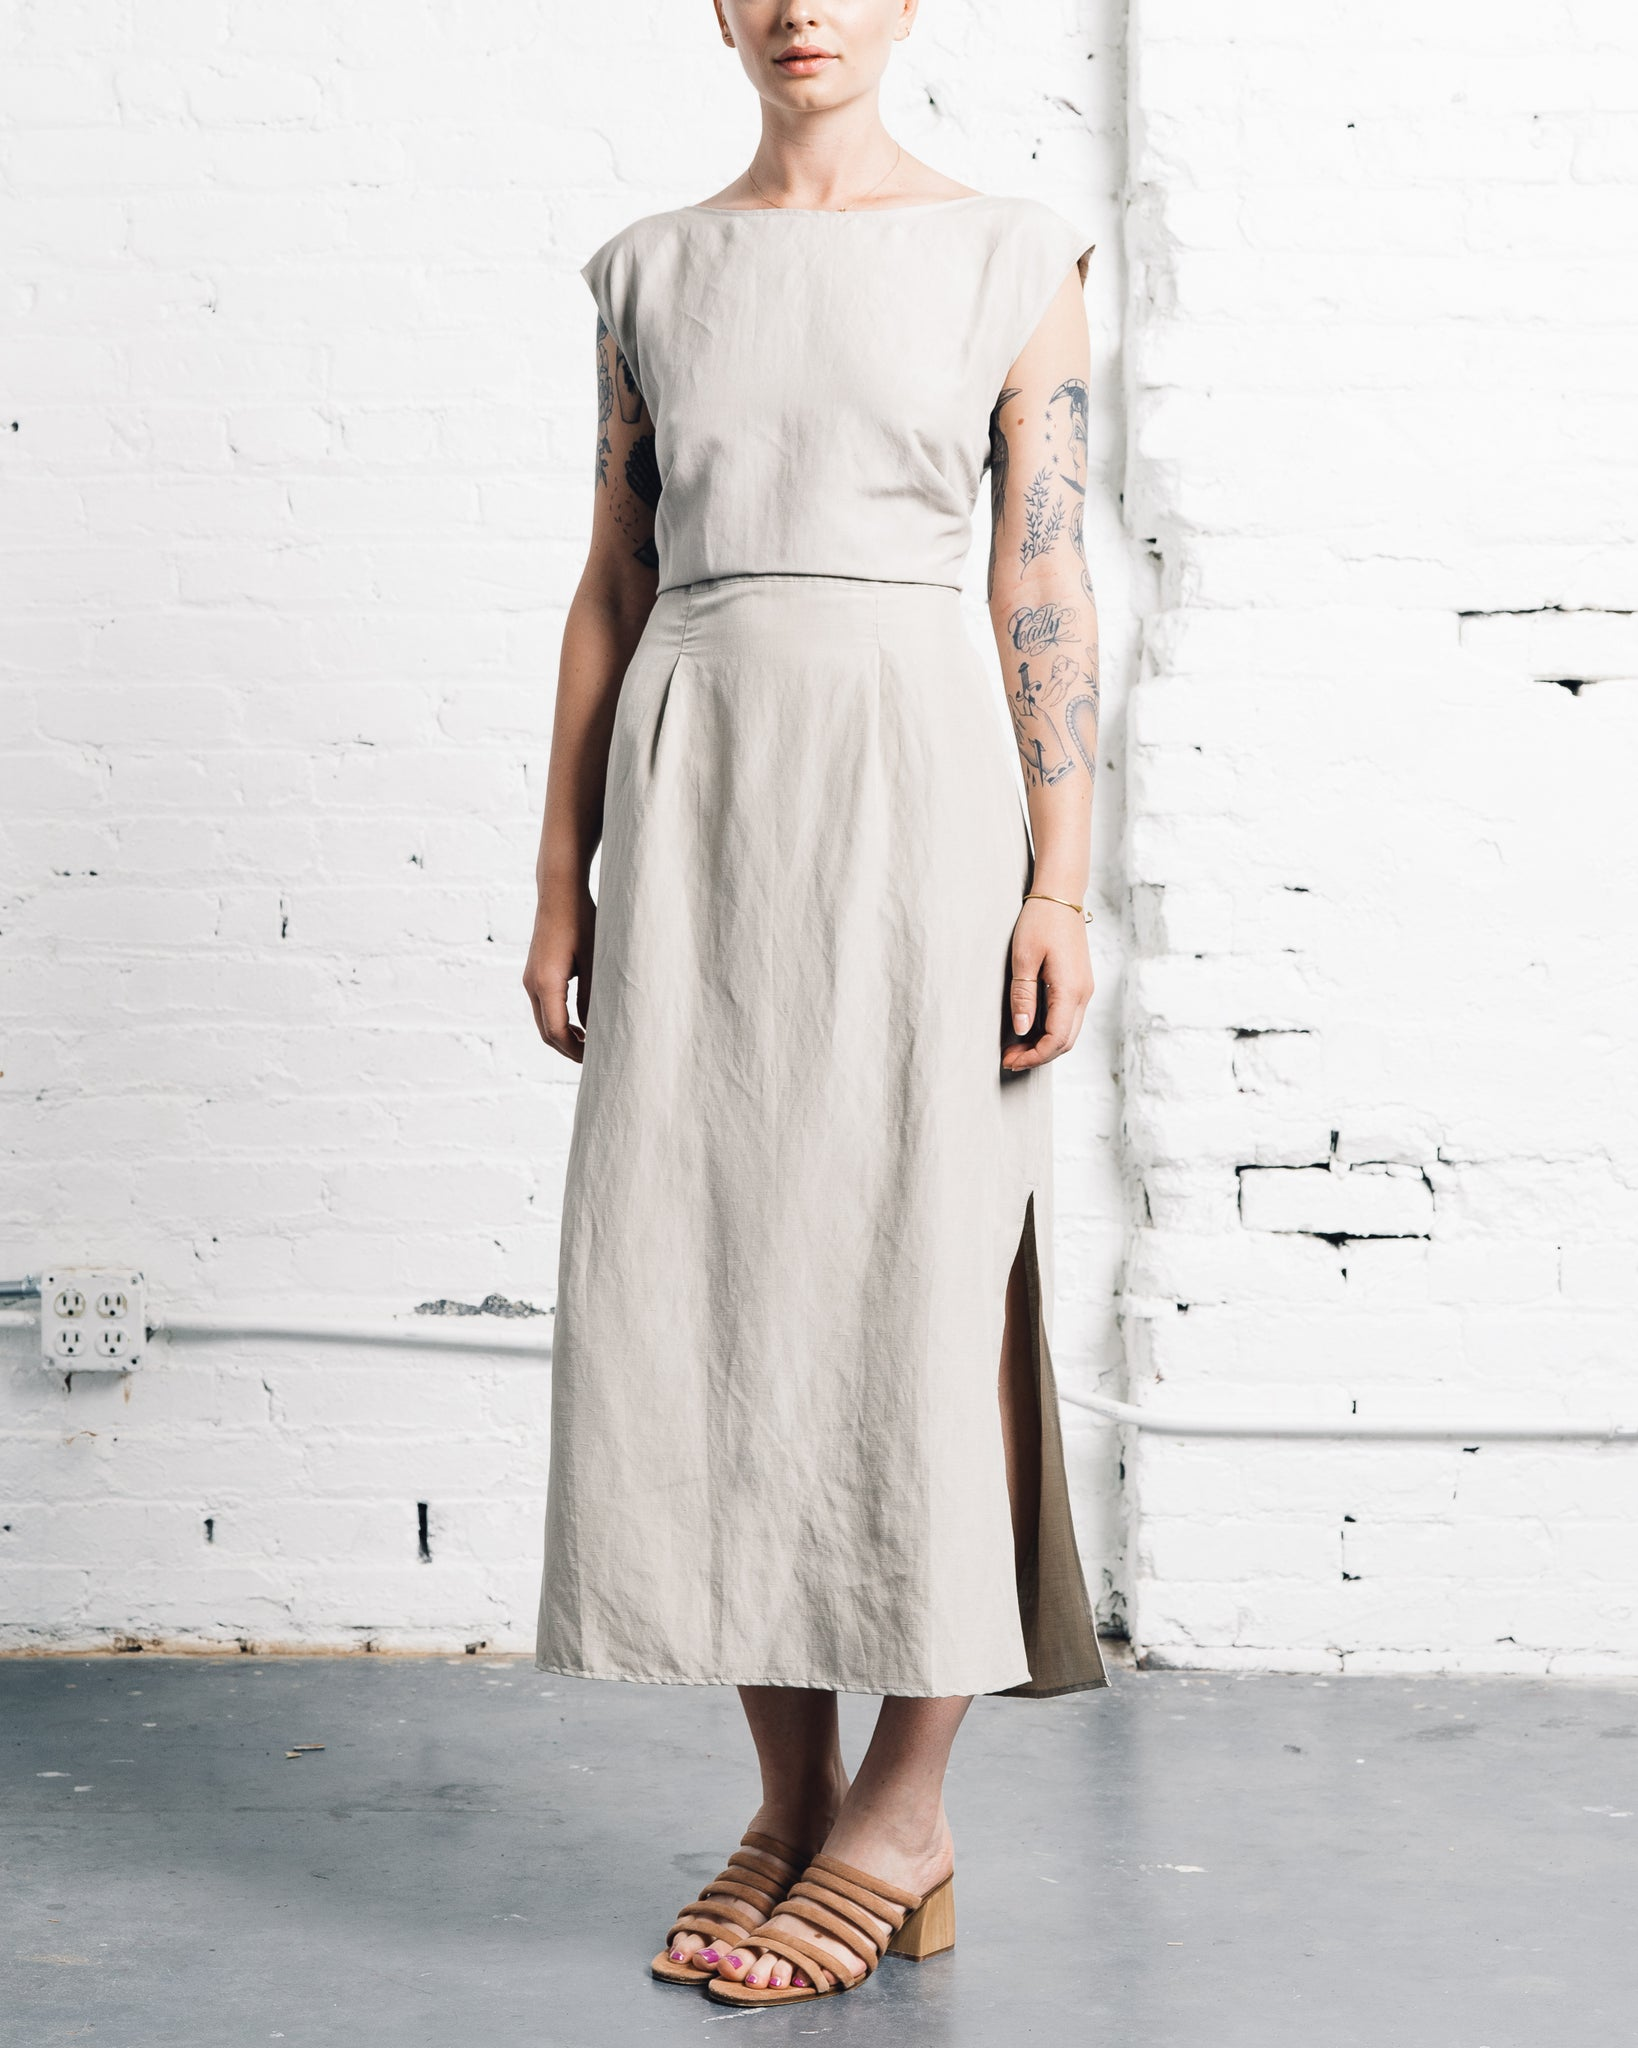 Ozma La Piedra Dress, Stucco